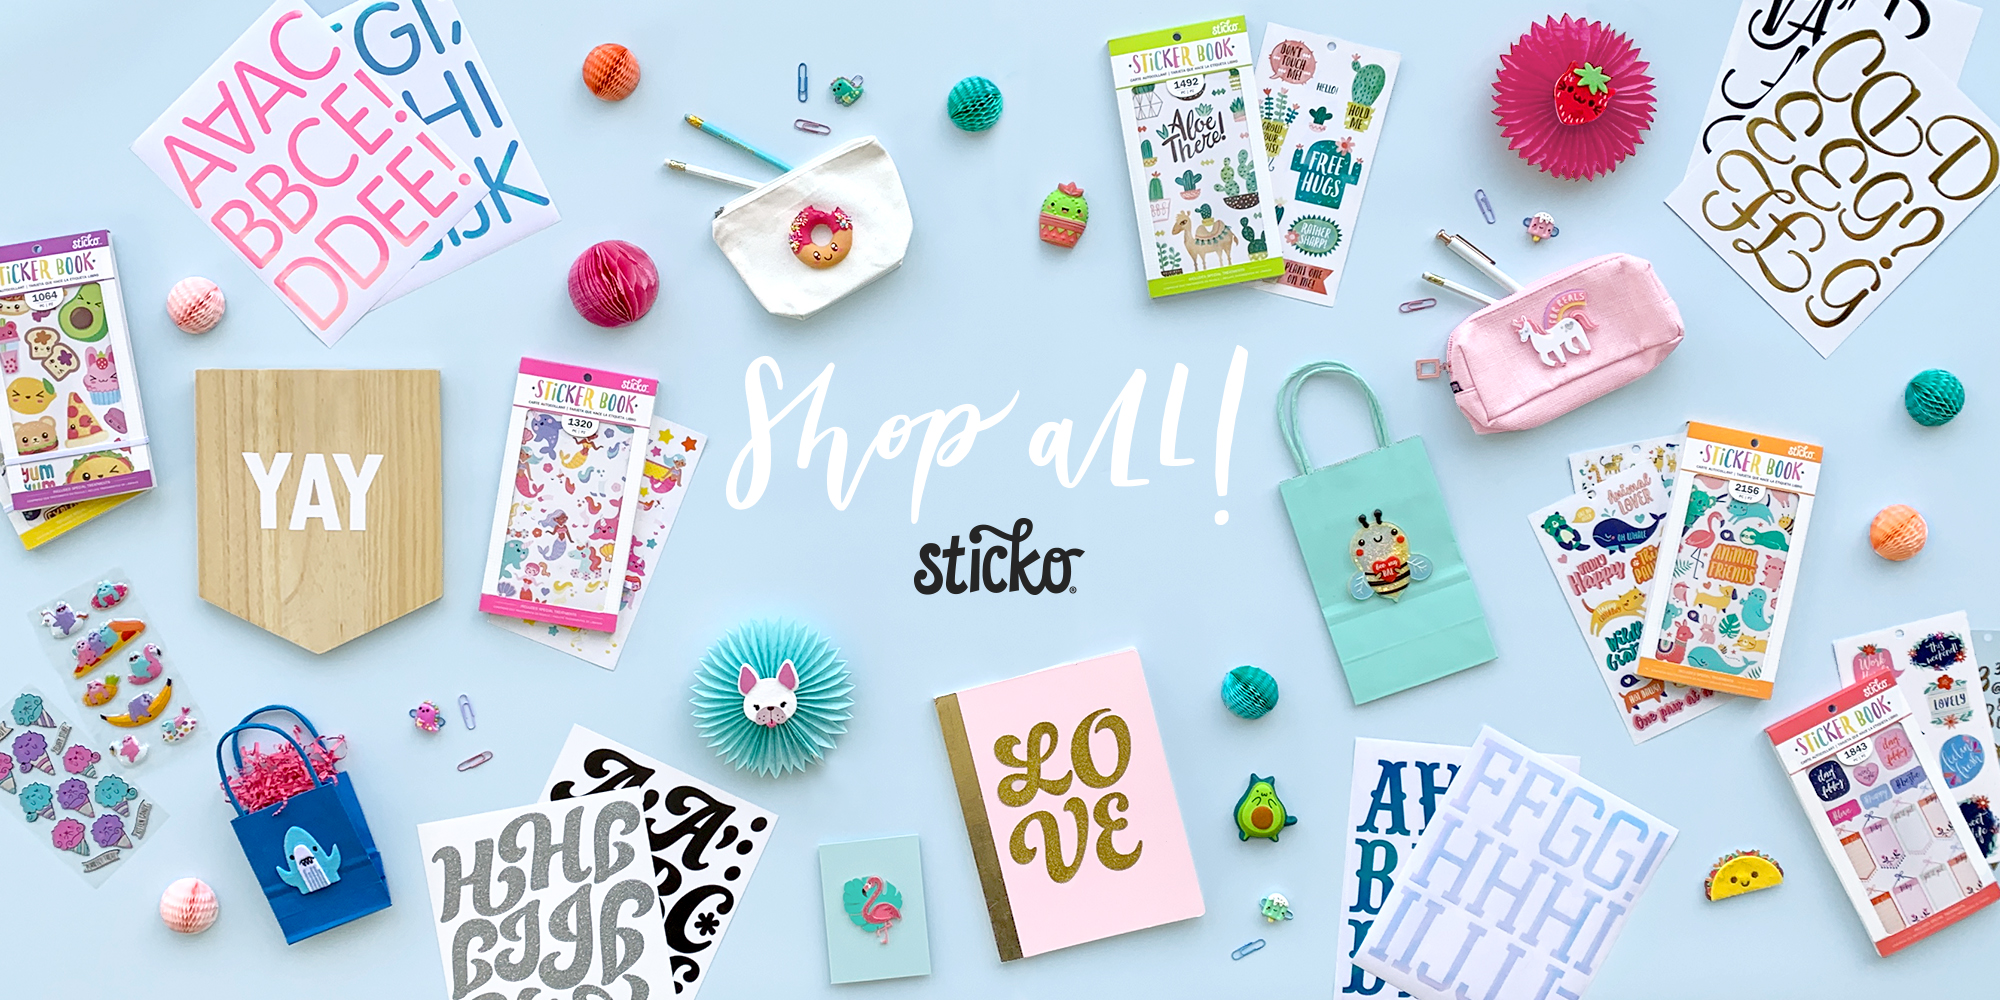 Shop_All_Sticko